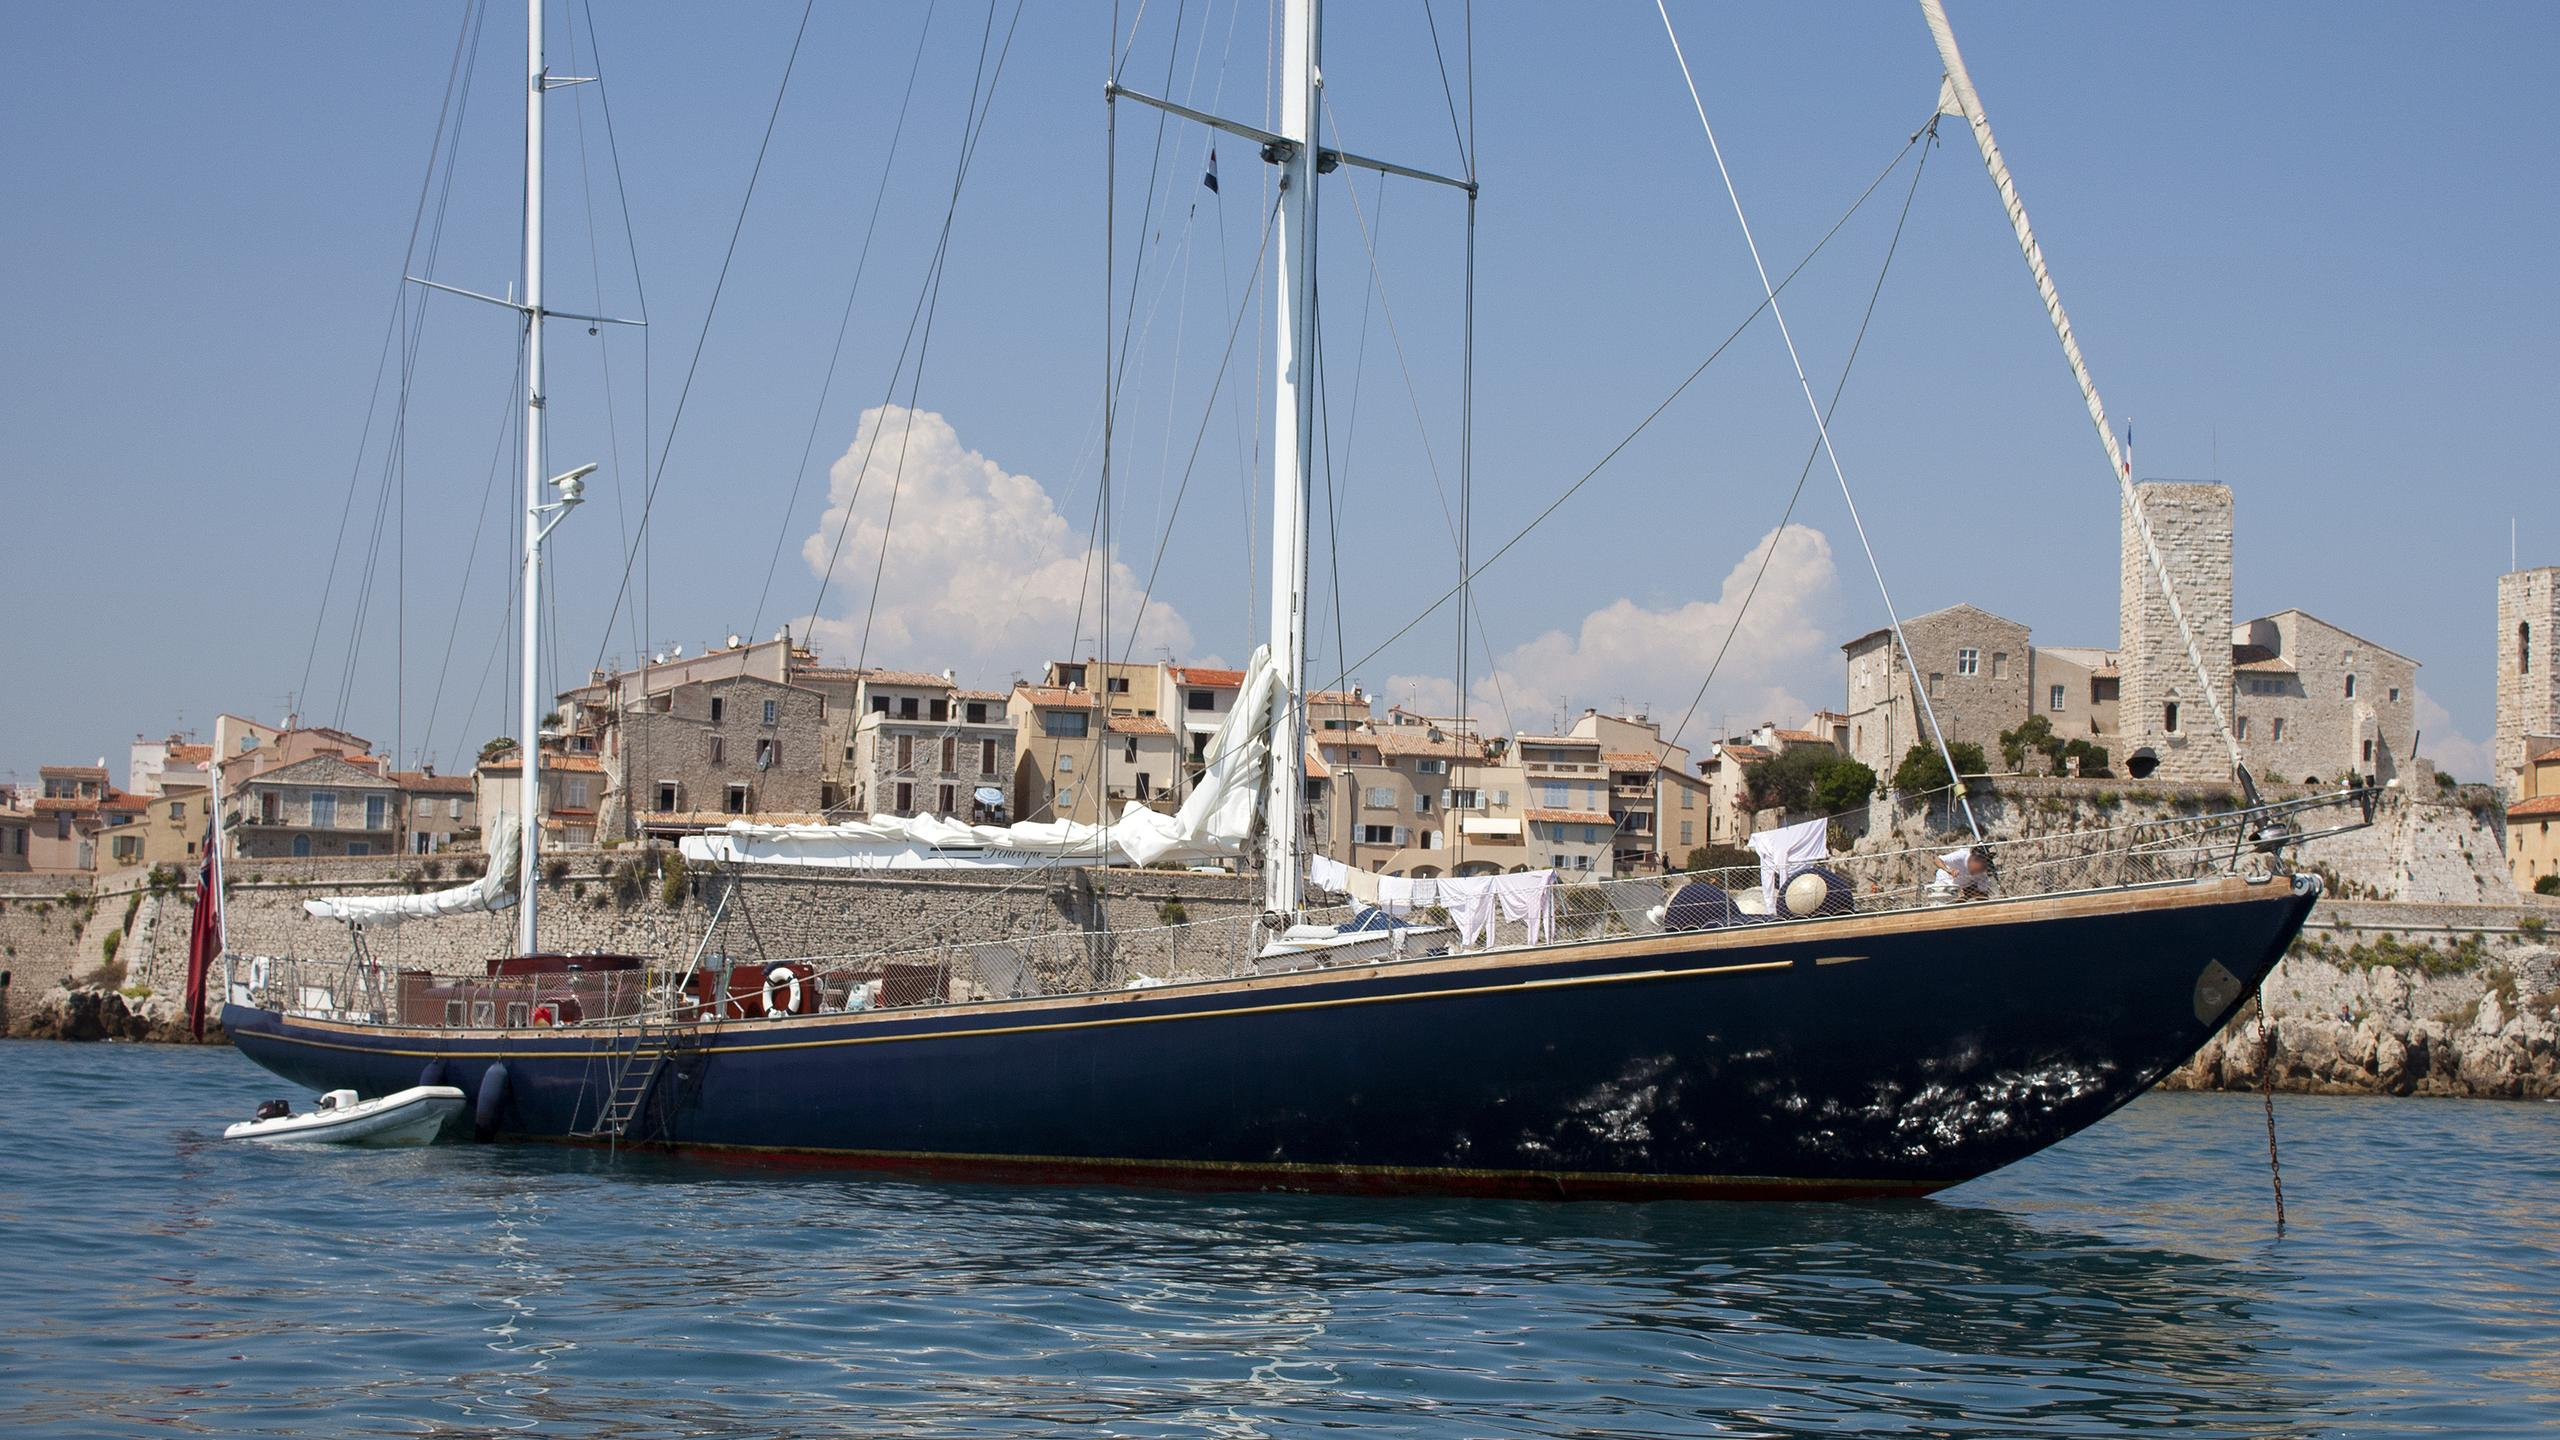 penelope-sailing-yacht-perriere-1968-39m-profile